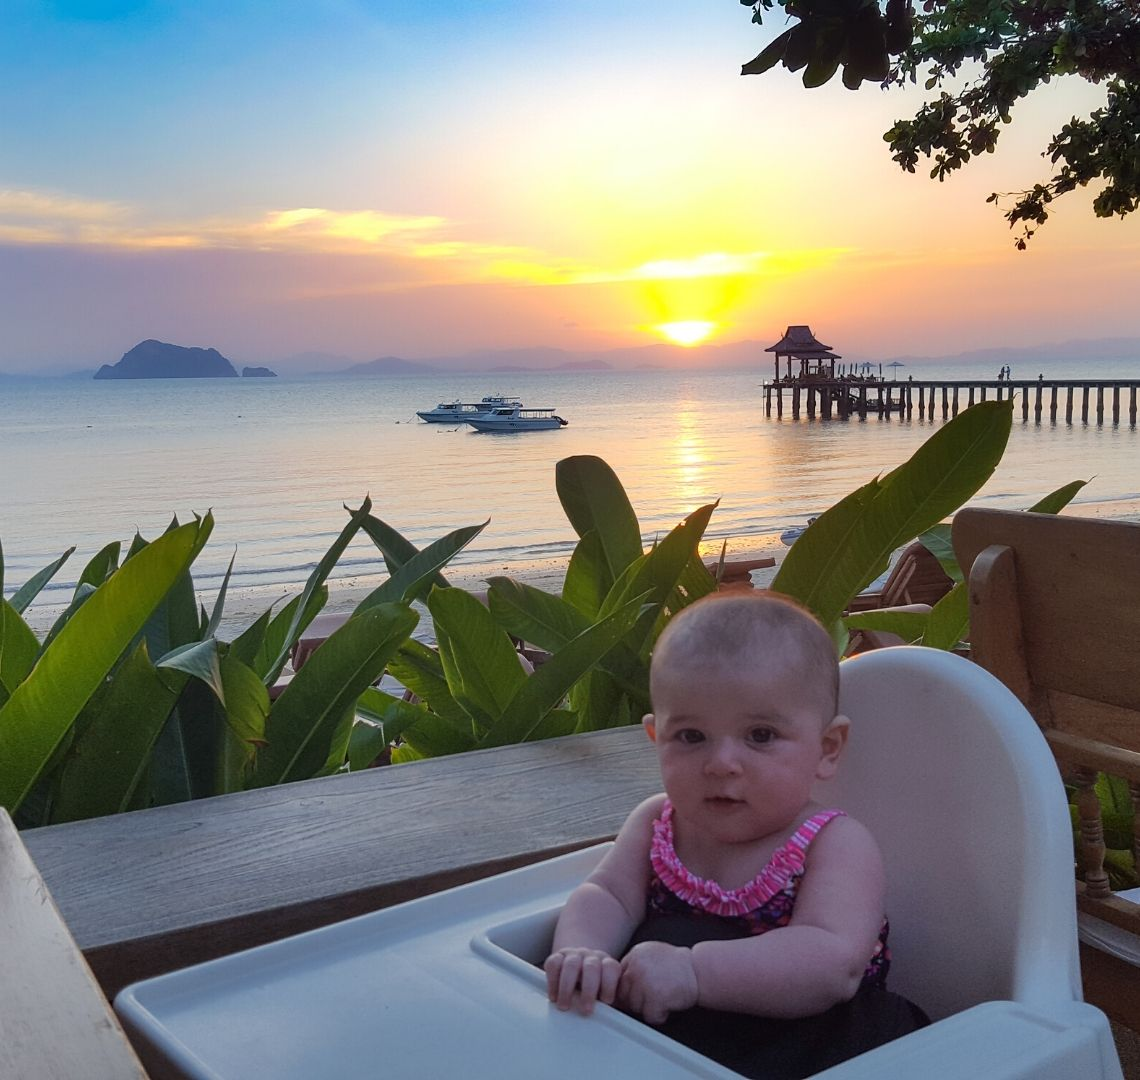 A baby in a white plastic high chair is in the foreground. Behind her there are some ferns and then the beach. There are 2 boats and a pier going into the calm sea waters and some islands in the distance. There is a rainbow of colours in the hazy sky and a bright yellow sun is setting on the horizon.